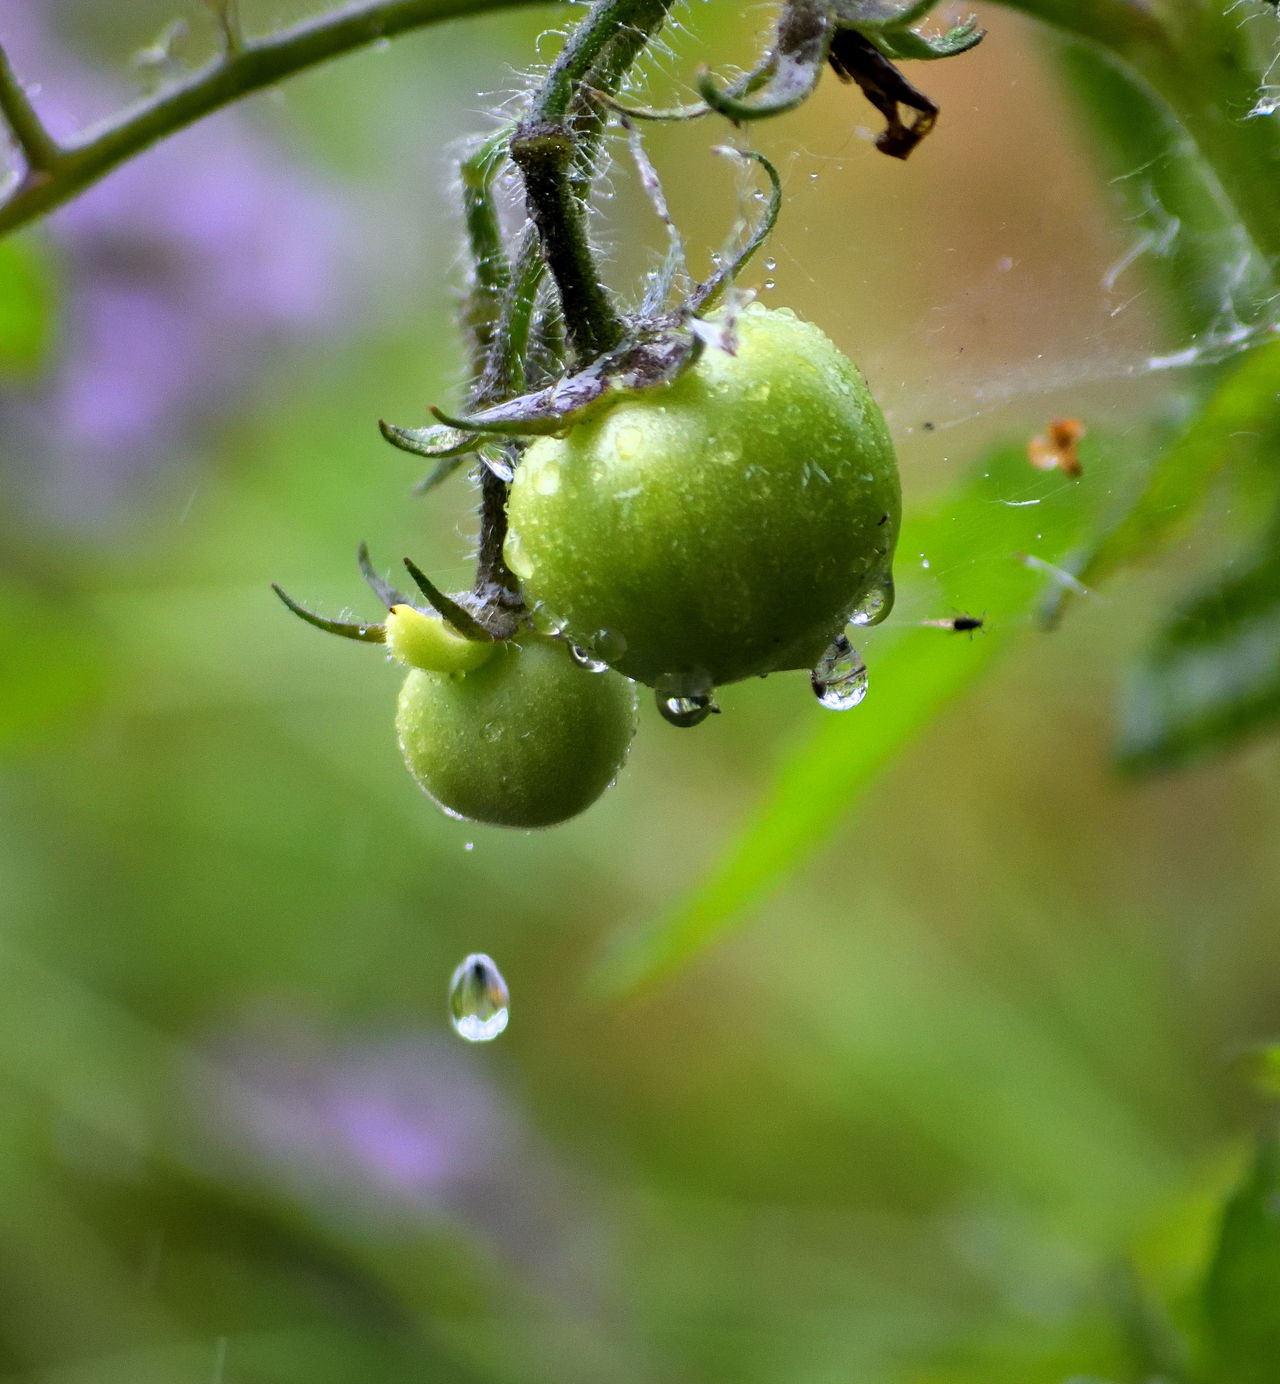 Beauty In Nature Close Up Cobweb Drop Falling Drops Focus On Foreground Food And Drink Freshness Fruit Green Color Green Tomatoes Growth Hanging Healthy Eating Nature Outdoors Rain Rainy Days Split Second Tomatoes Water Wet